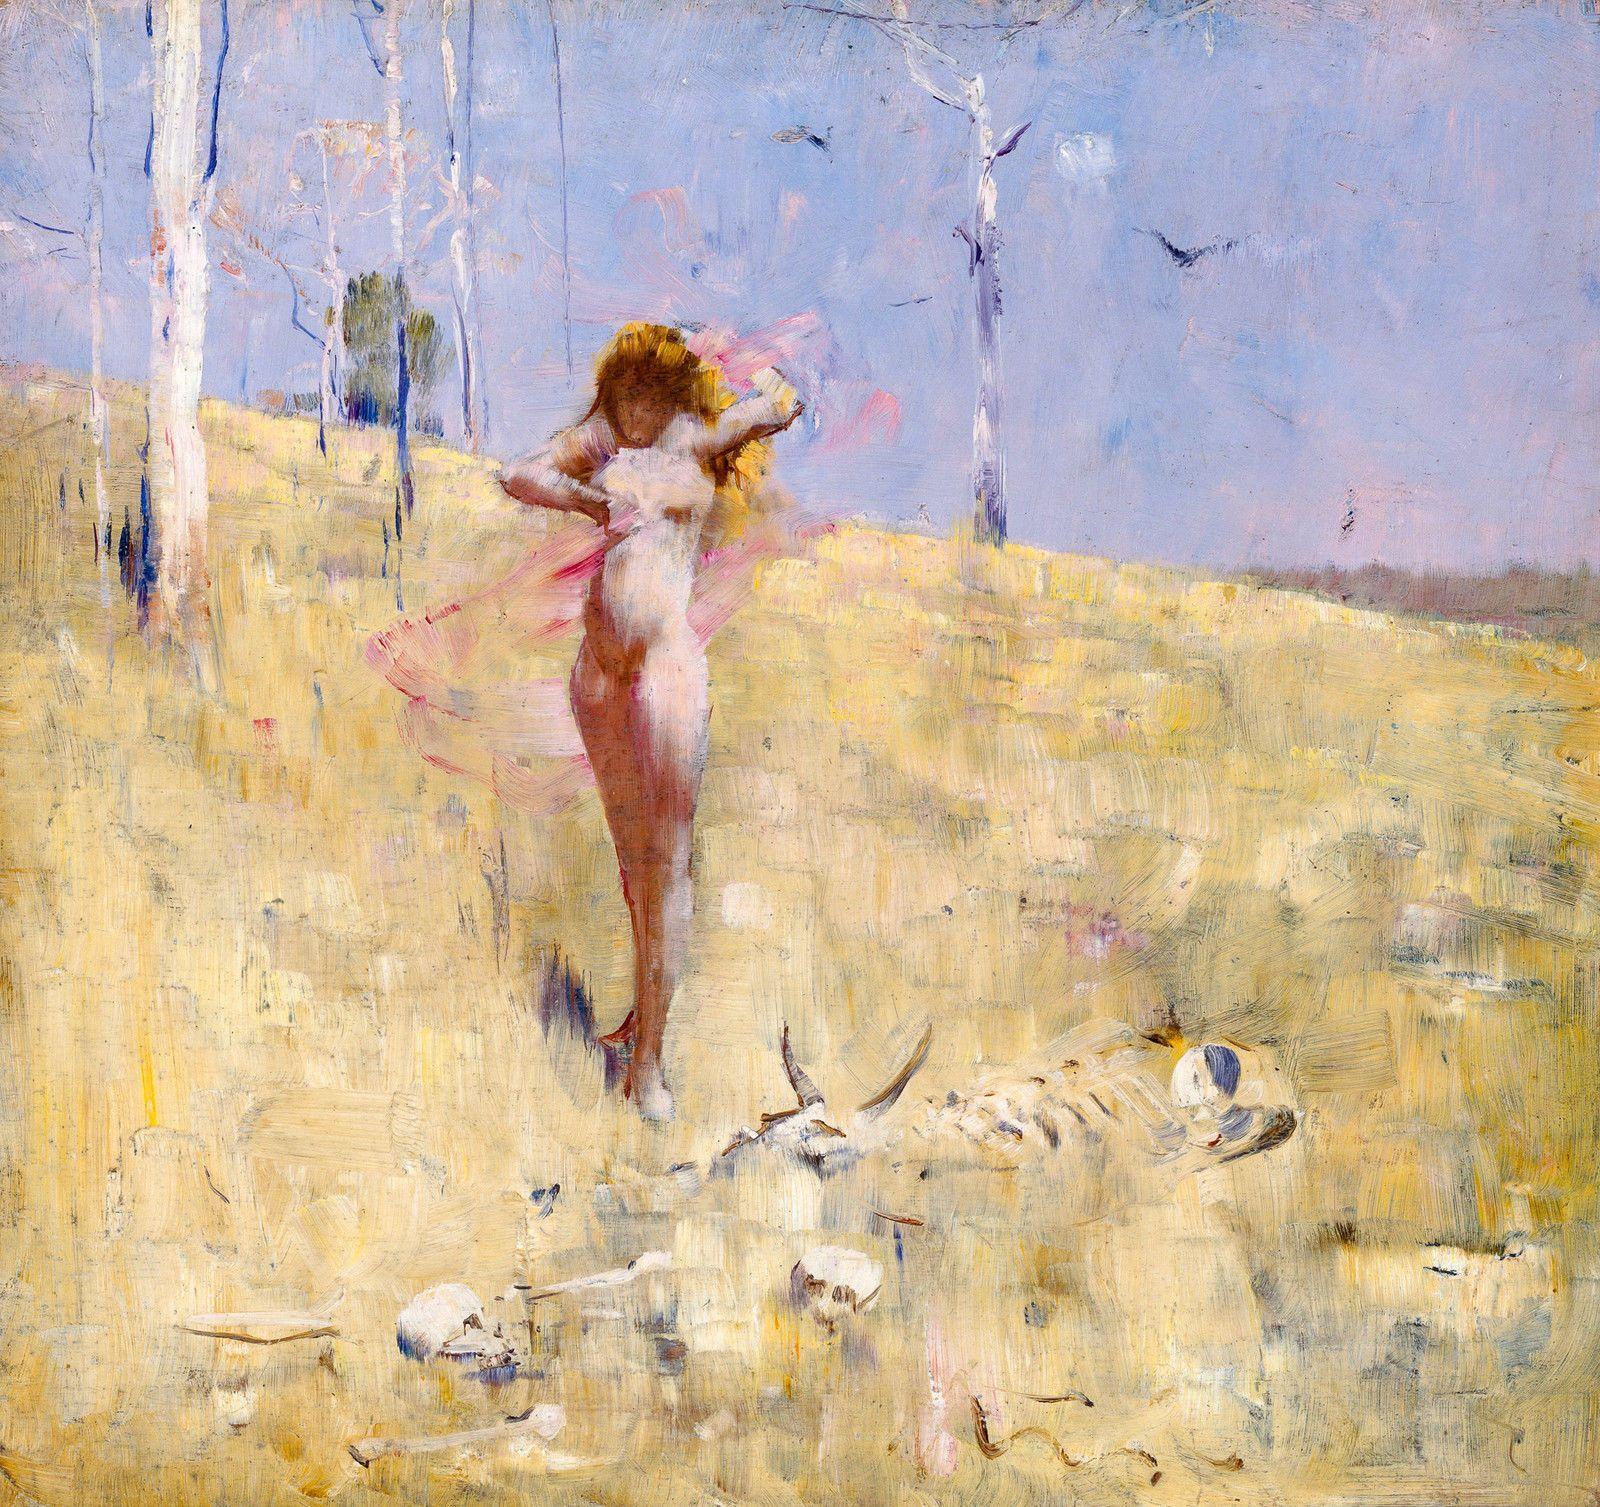 Arthur Streeton, The Spirit of the Drought 1895, Fade Proof HD Print or Canvas in Art, Prints   eBay